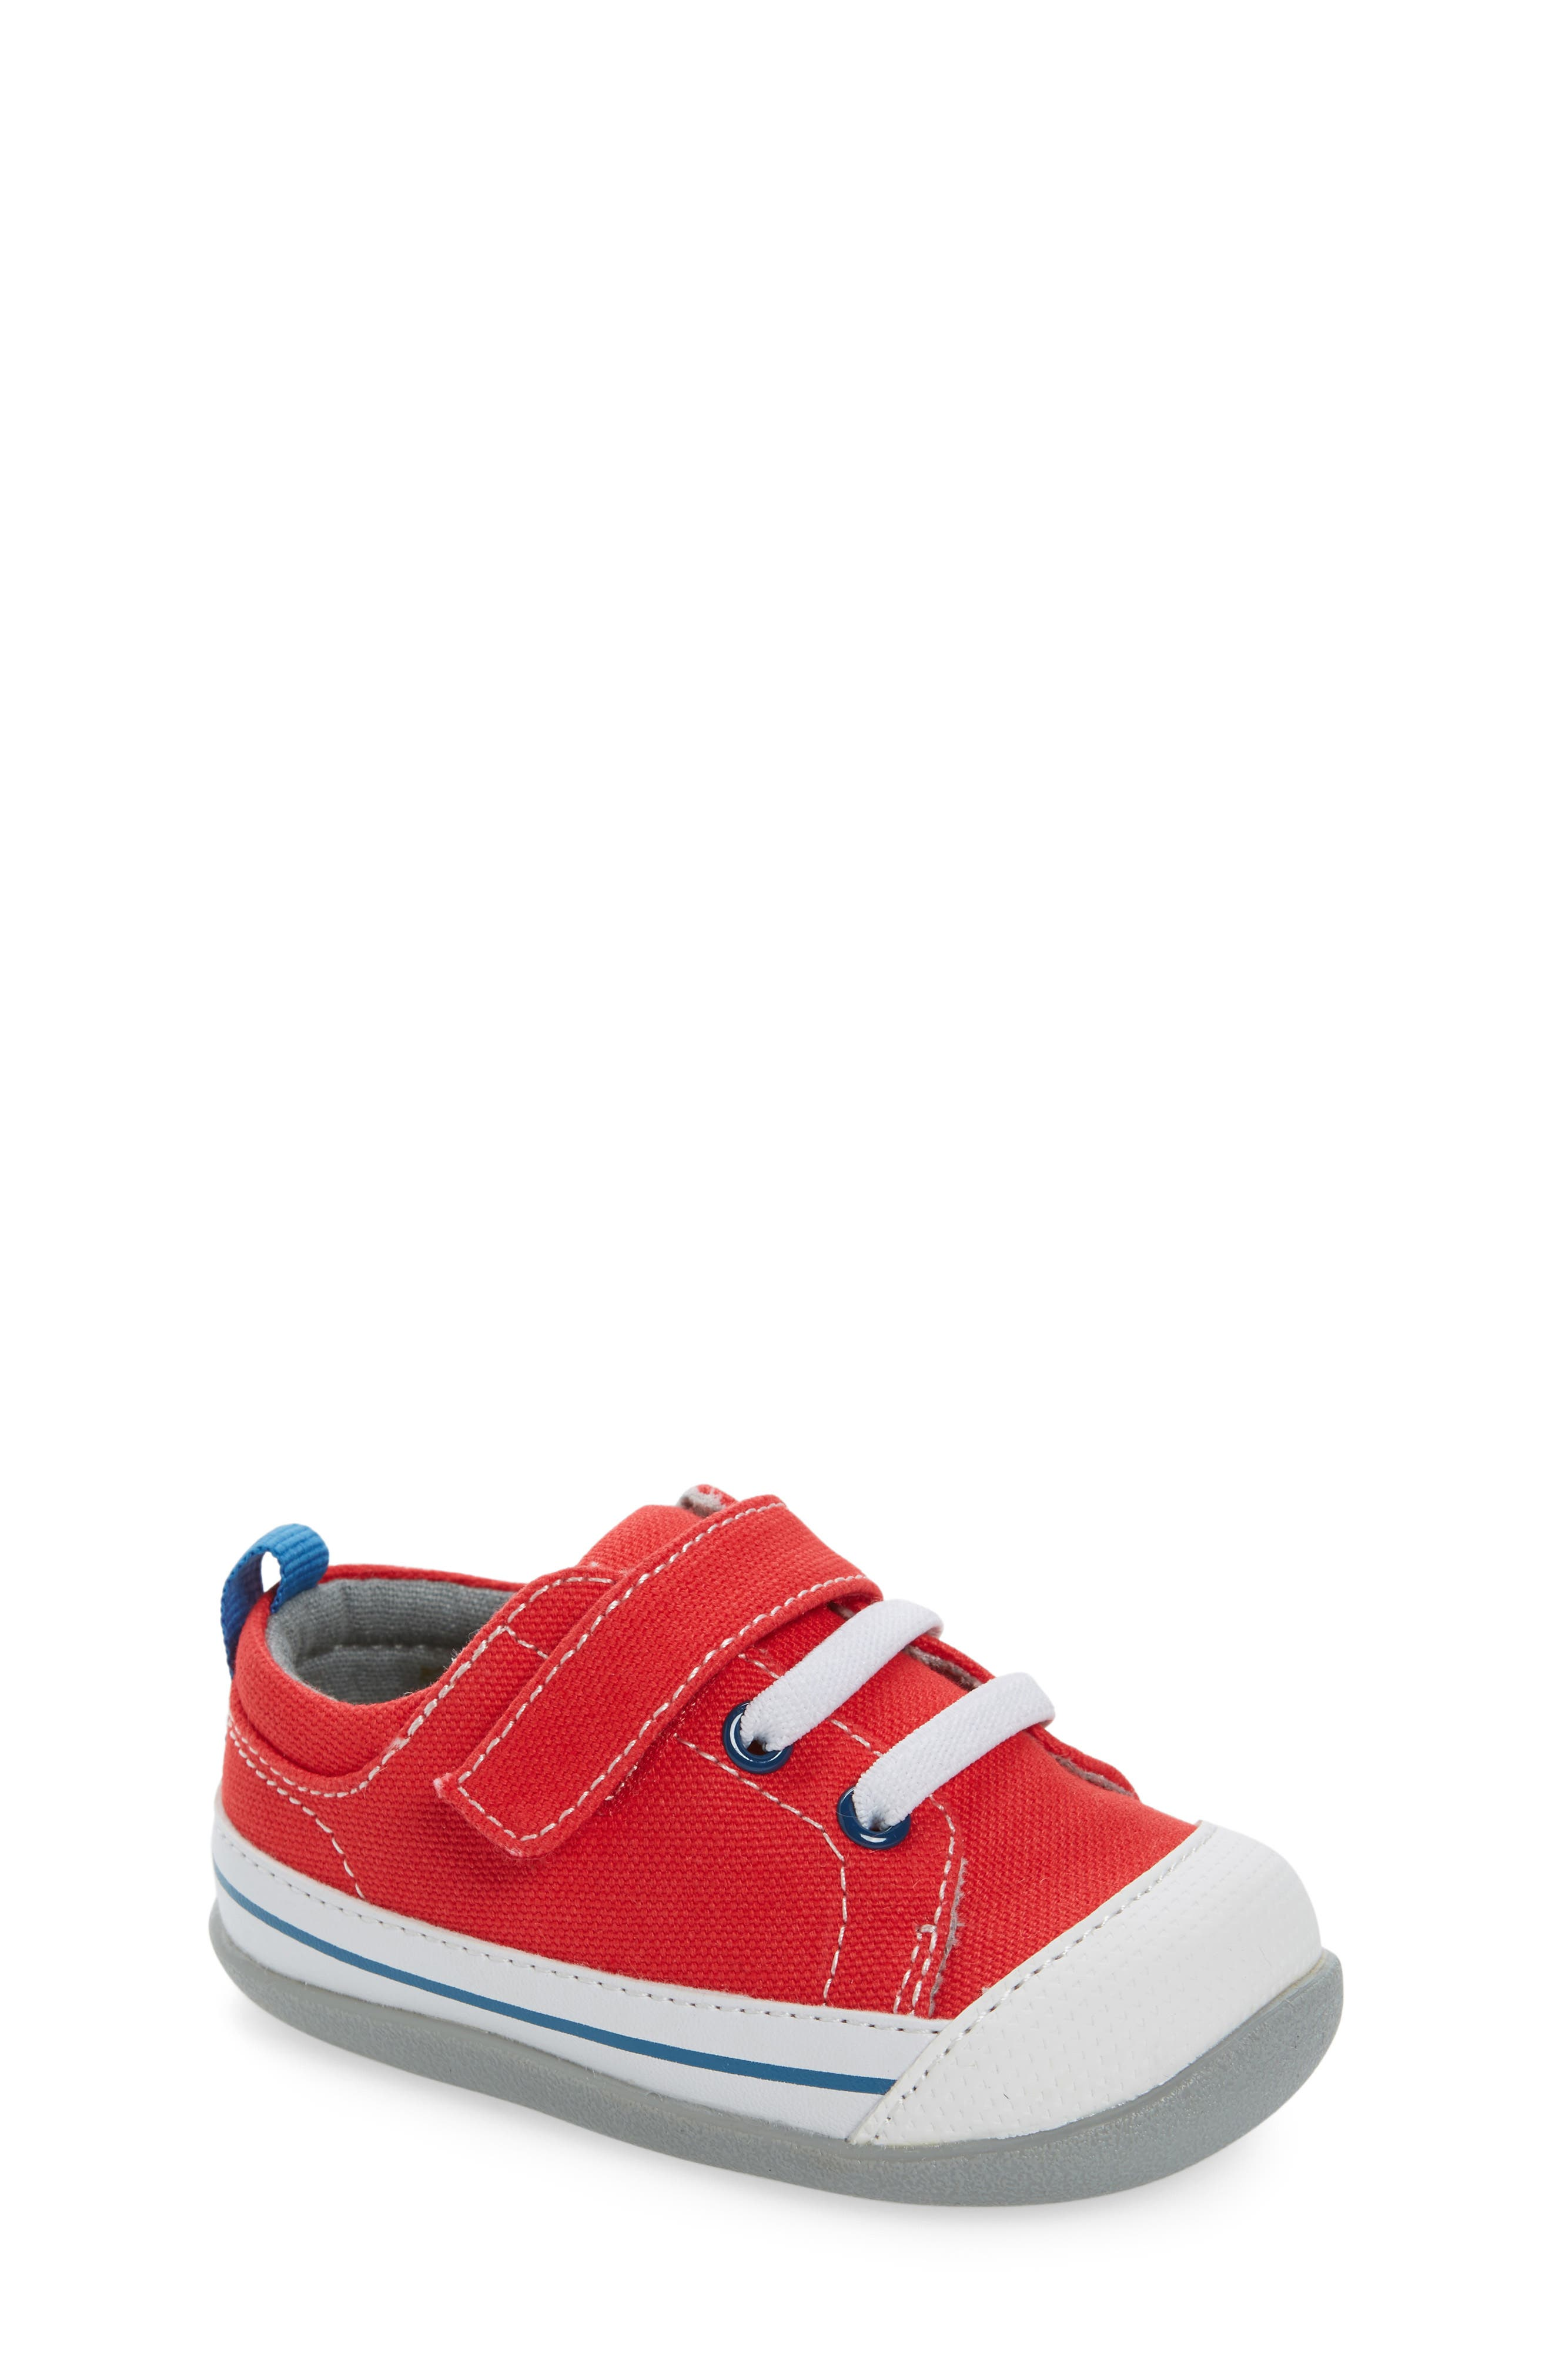 Stevie II Sneaker,                         Main,                         color, RED CANVAS